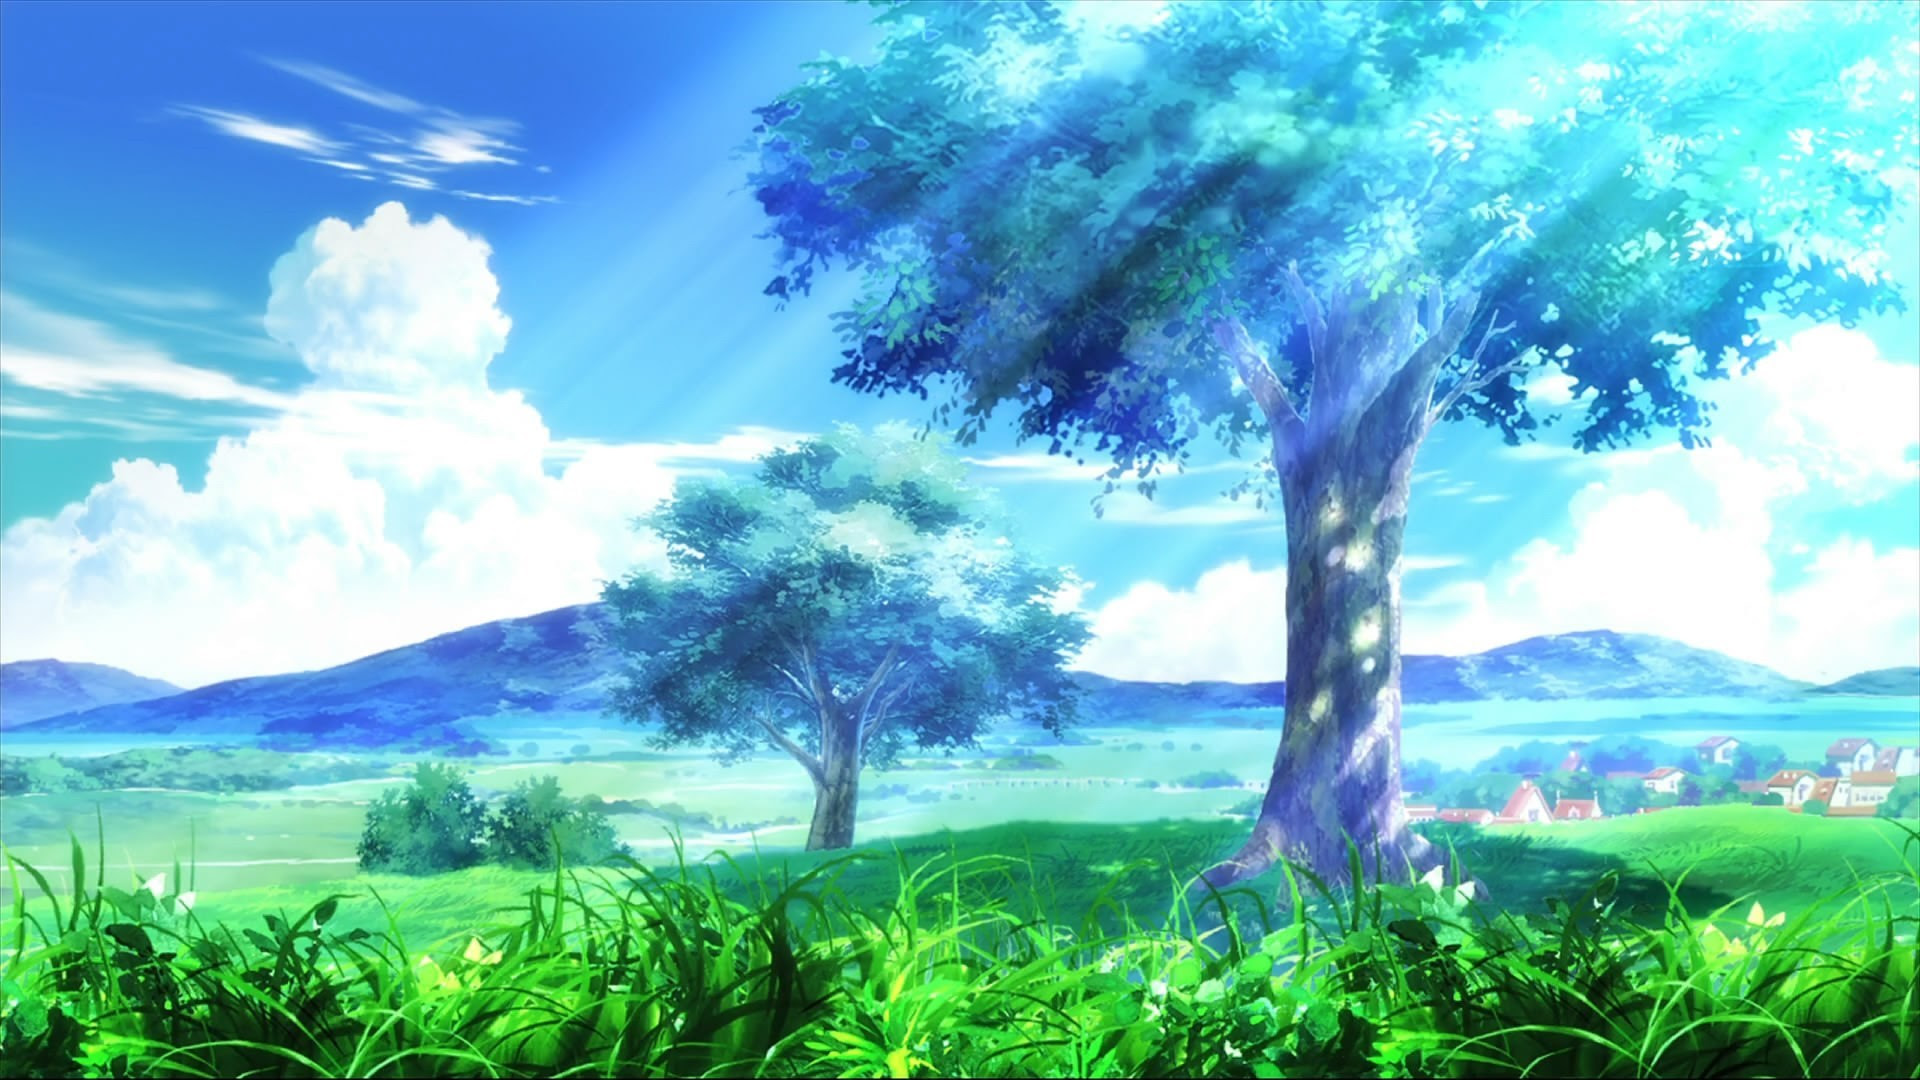 Unduh 5000 Koleksi Background Anime Hd Terbaik